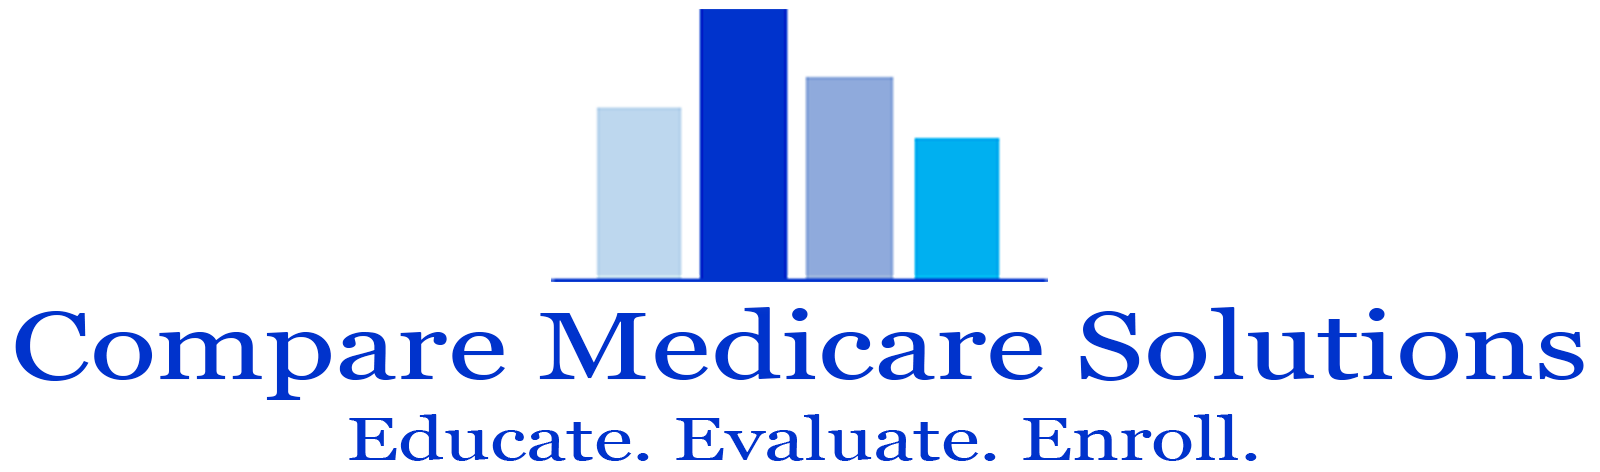 Compare Medicare Solutions